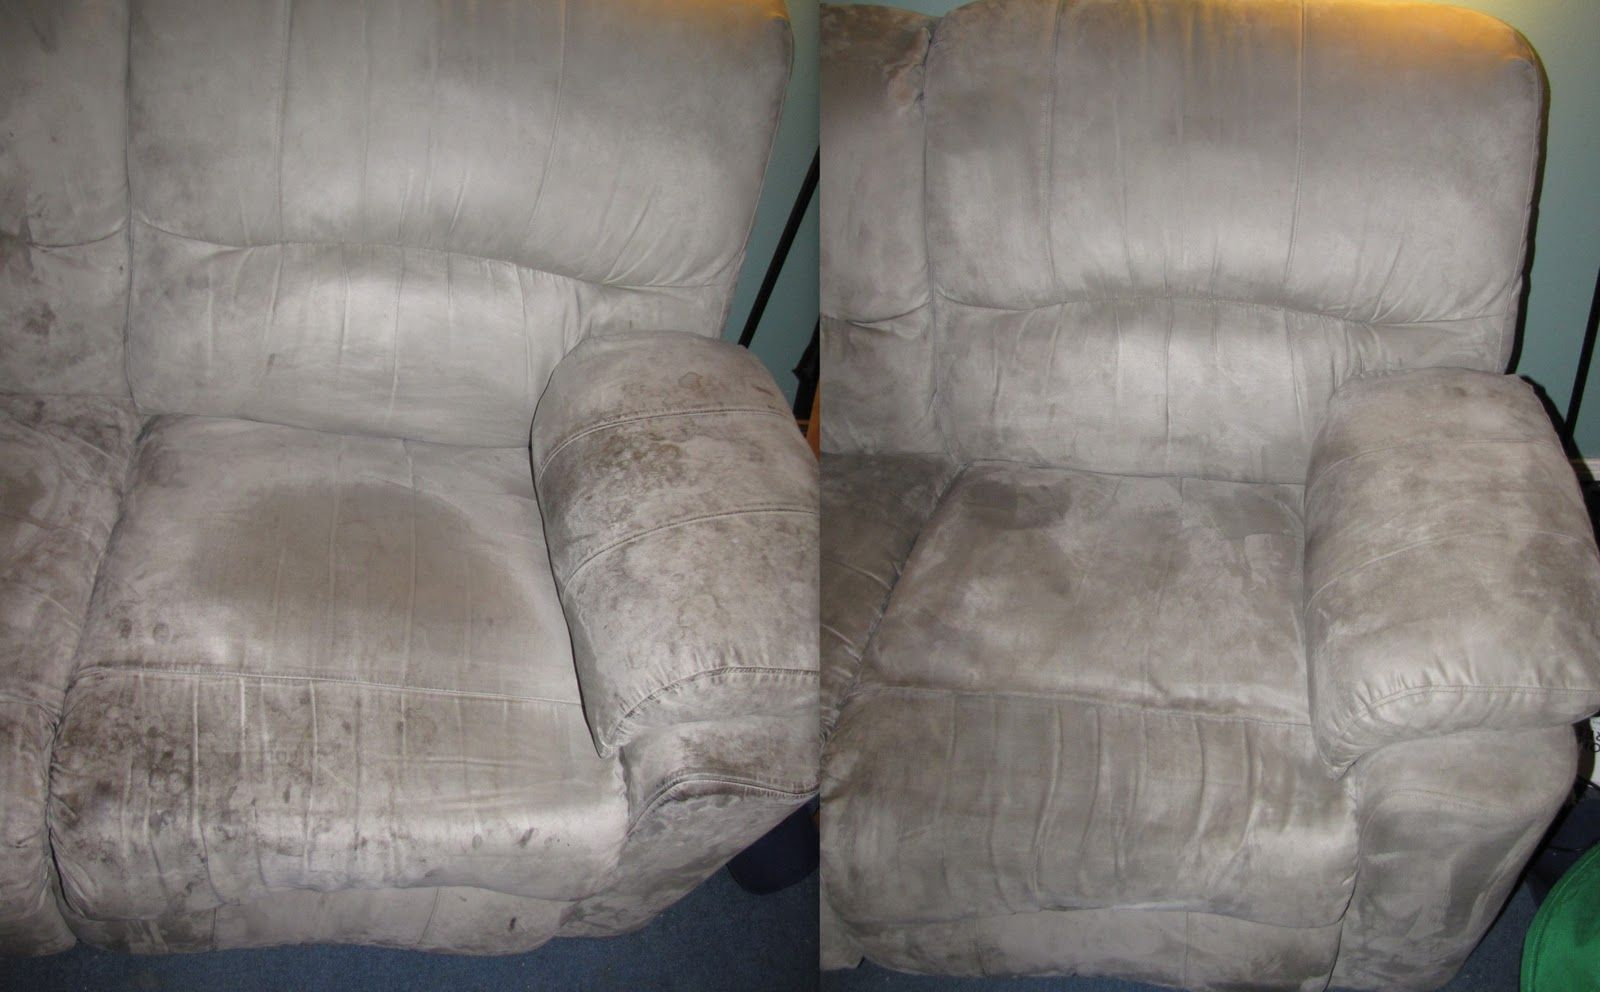 How To Clean Mircofiber Couches Just Need Rubbing Alcohol